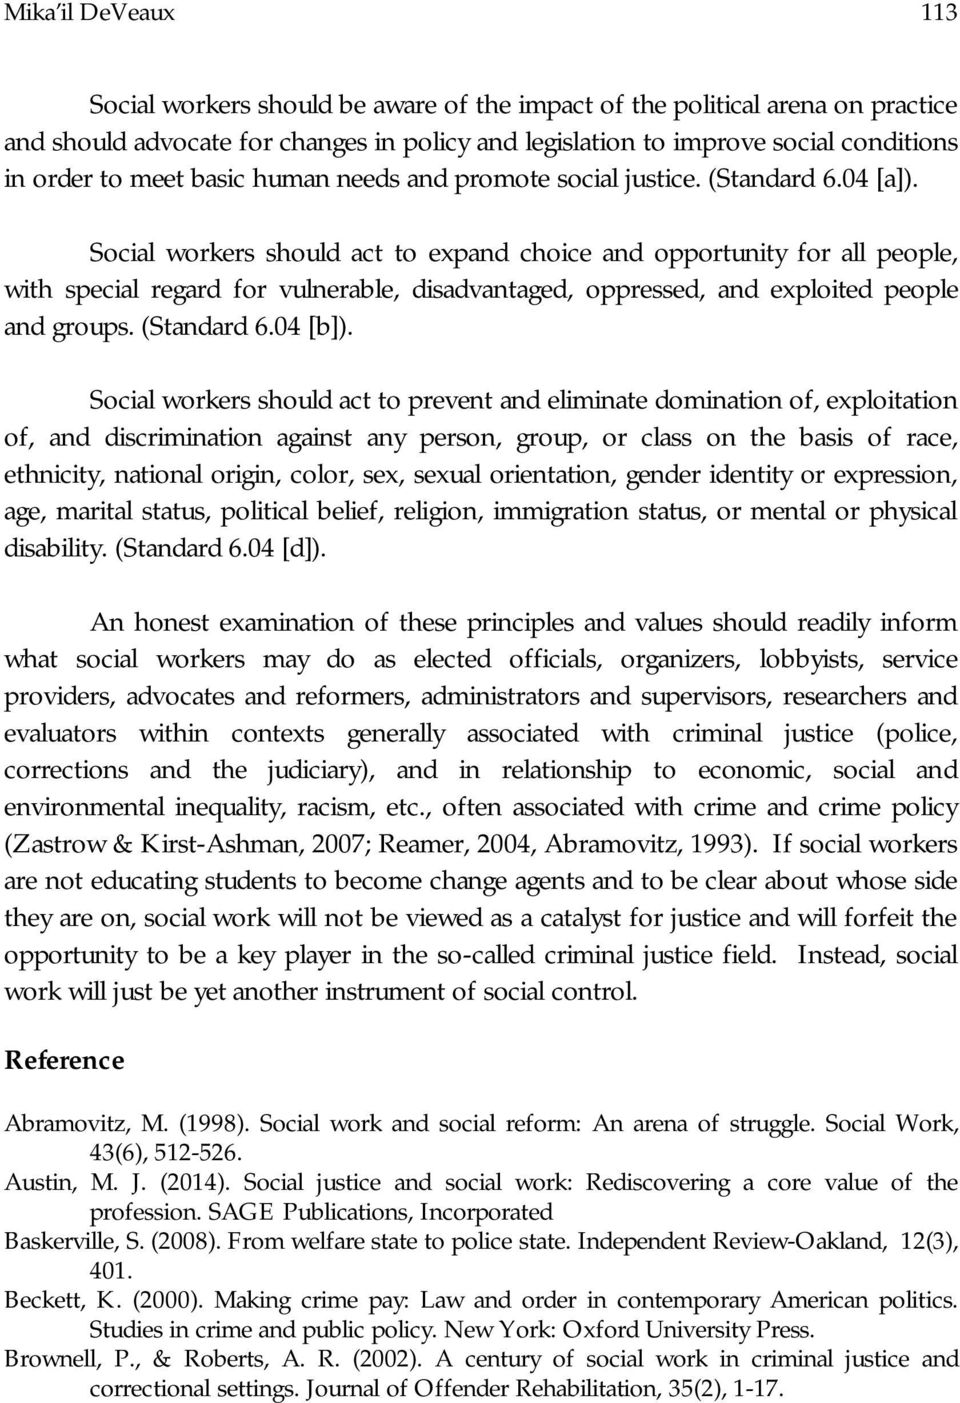 Social workers should act to expand choice and opportunity for all people, with special regard for vulnerable, disadvantaged, oppressed, and exploited people and groups. (Standard 6.04 [b]).